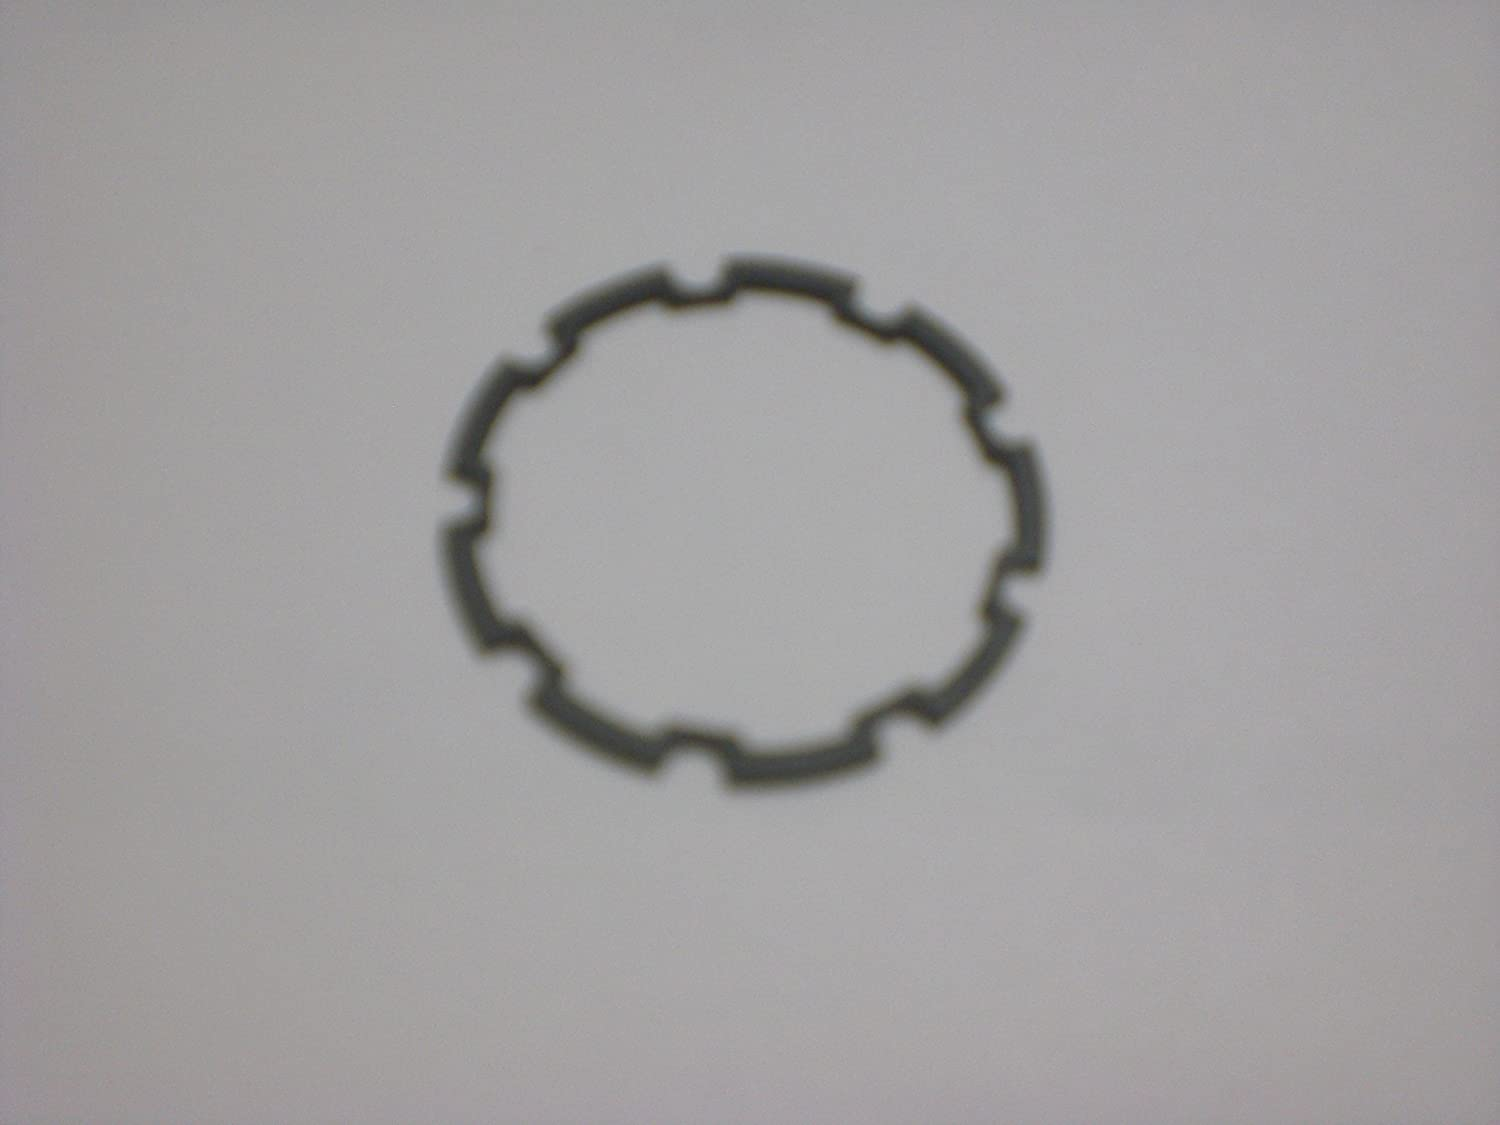 11 Speed Bicycle Cassette Low Spacer 1.85mm For Shimano Sram Bicycle Hub Spacers